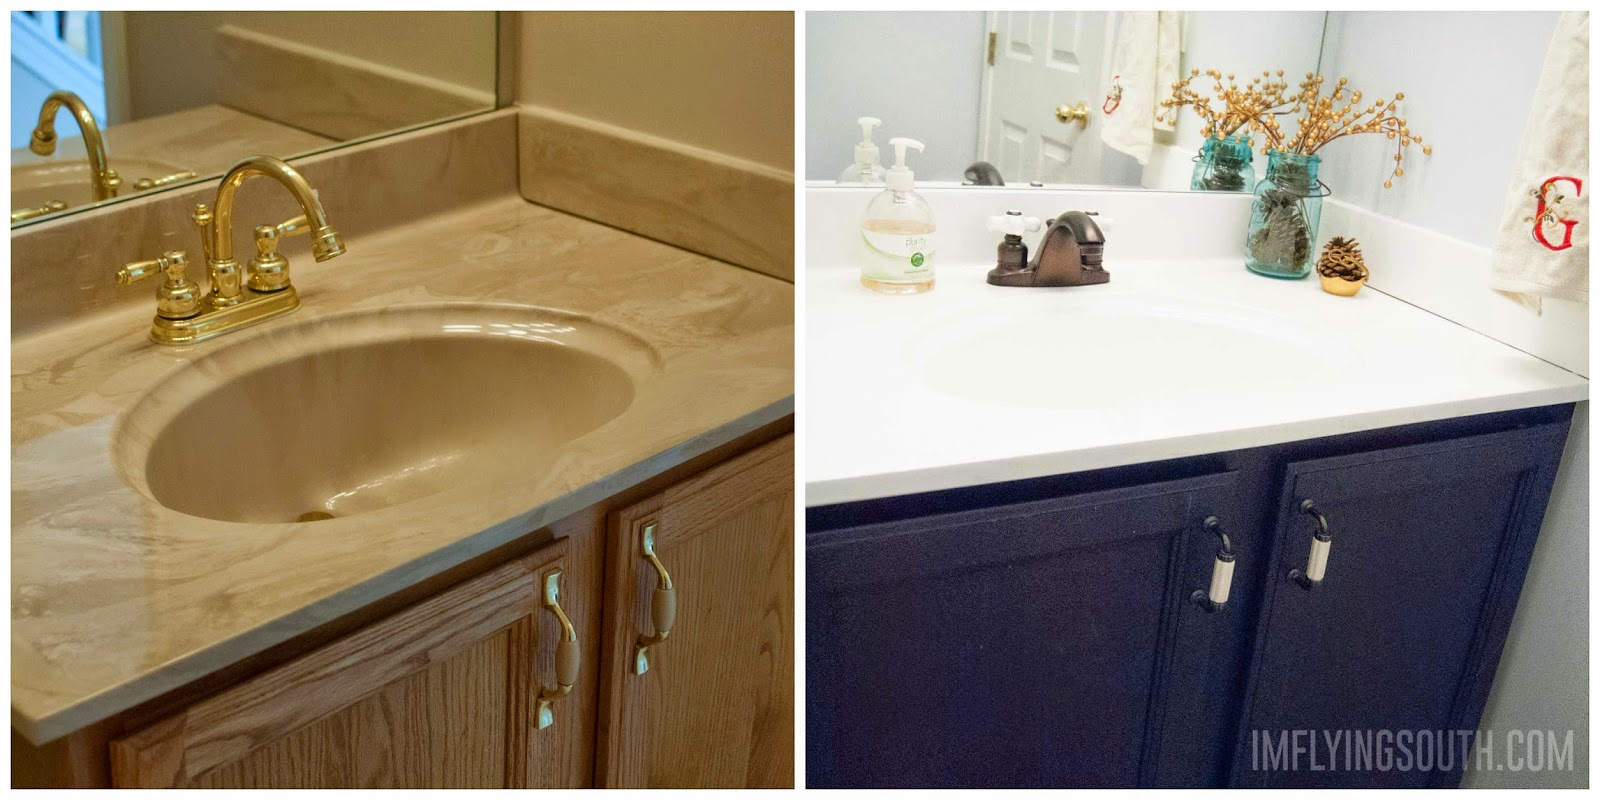 Waschbecken Lackieren Remodelaholic Painted Bathroom Sink And Countertop Makeover